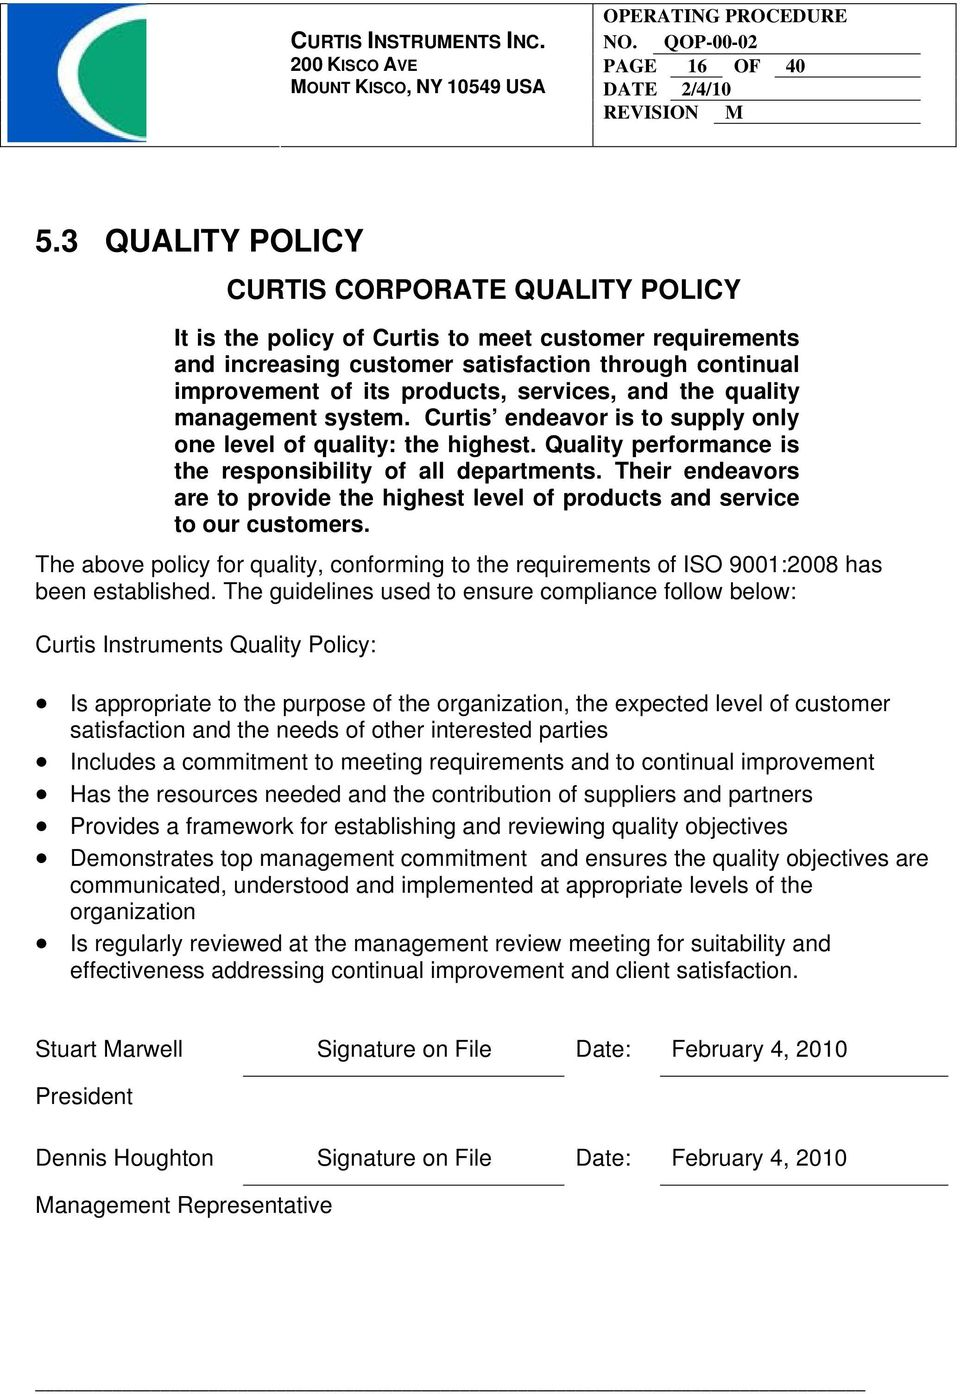 and the quality management system. Curtis endeavor is to supply only one level of quality: the highest. Quality performance is the responsibility of all departments.